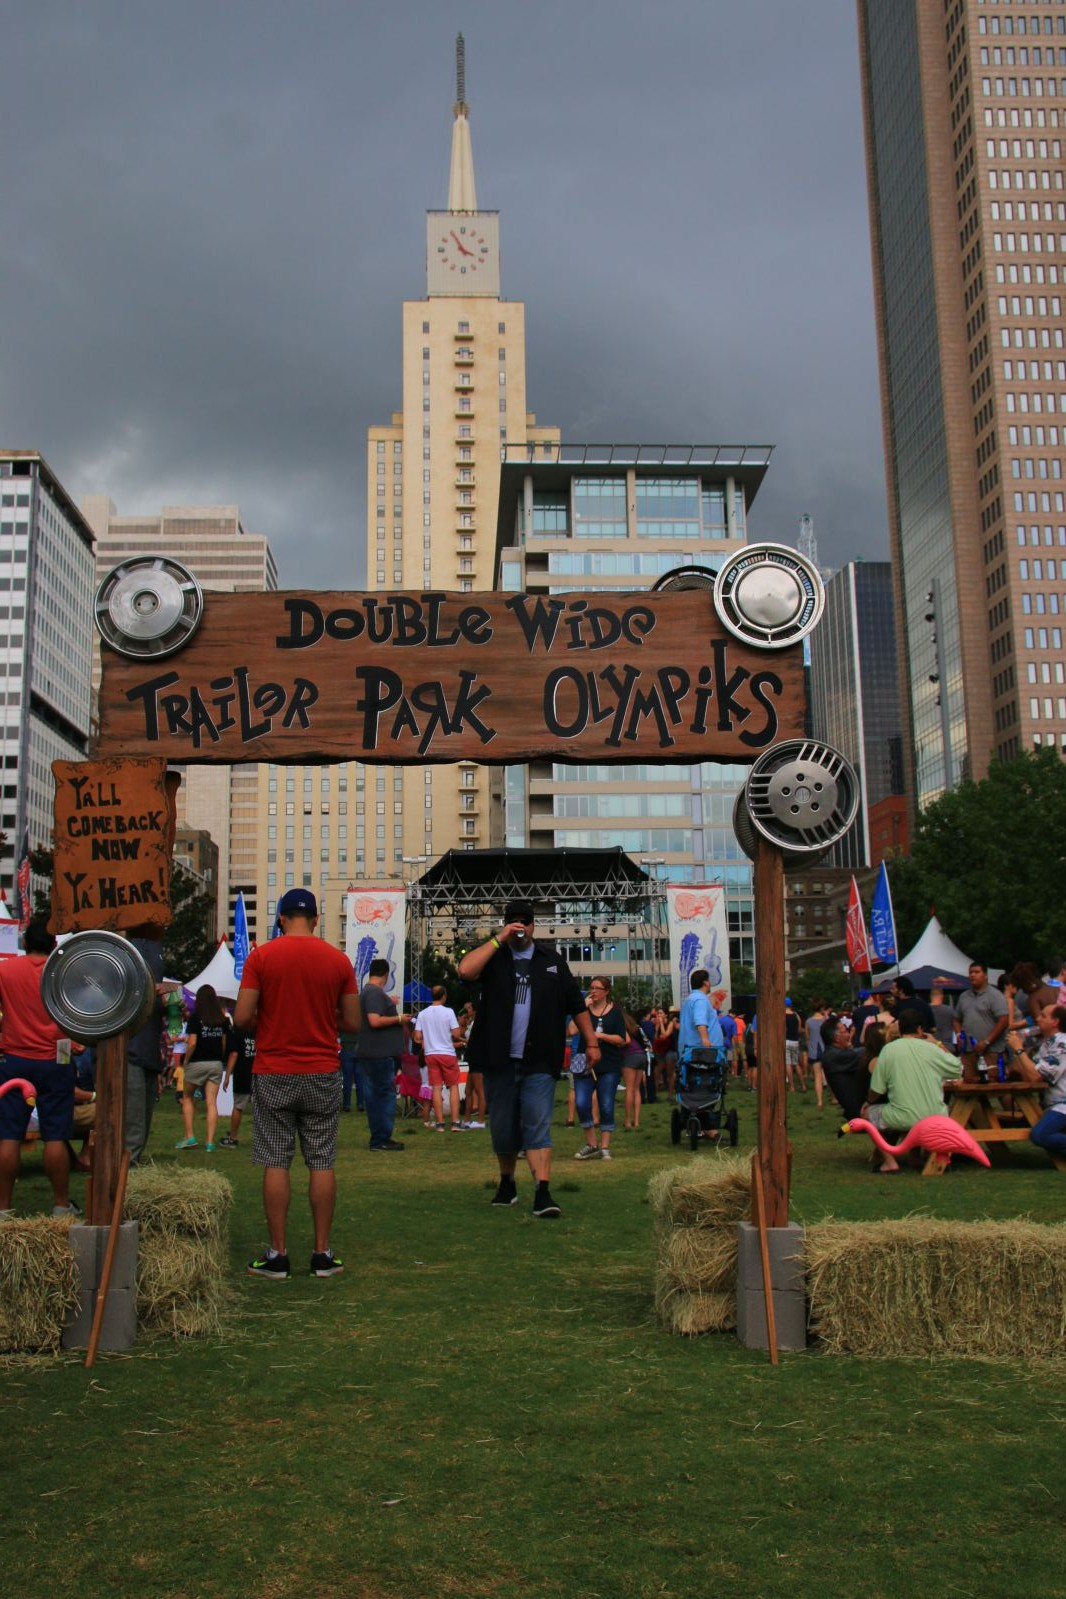 Doublewide presented the Trailer Park Olympics at Smoked Dallas 2016